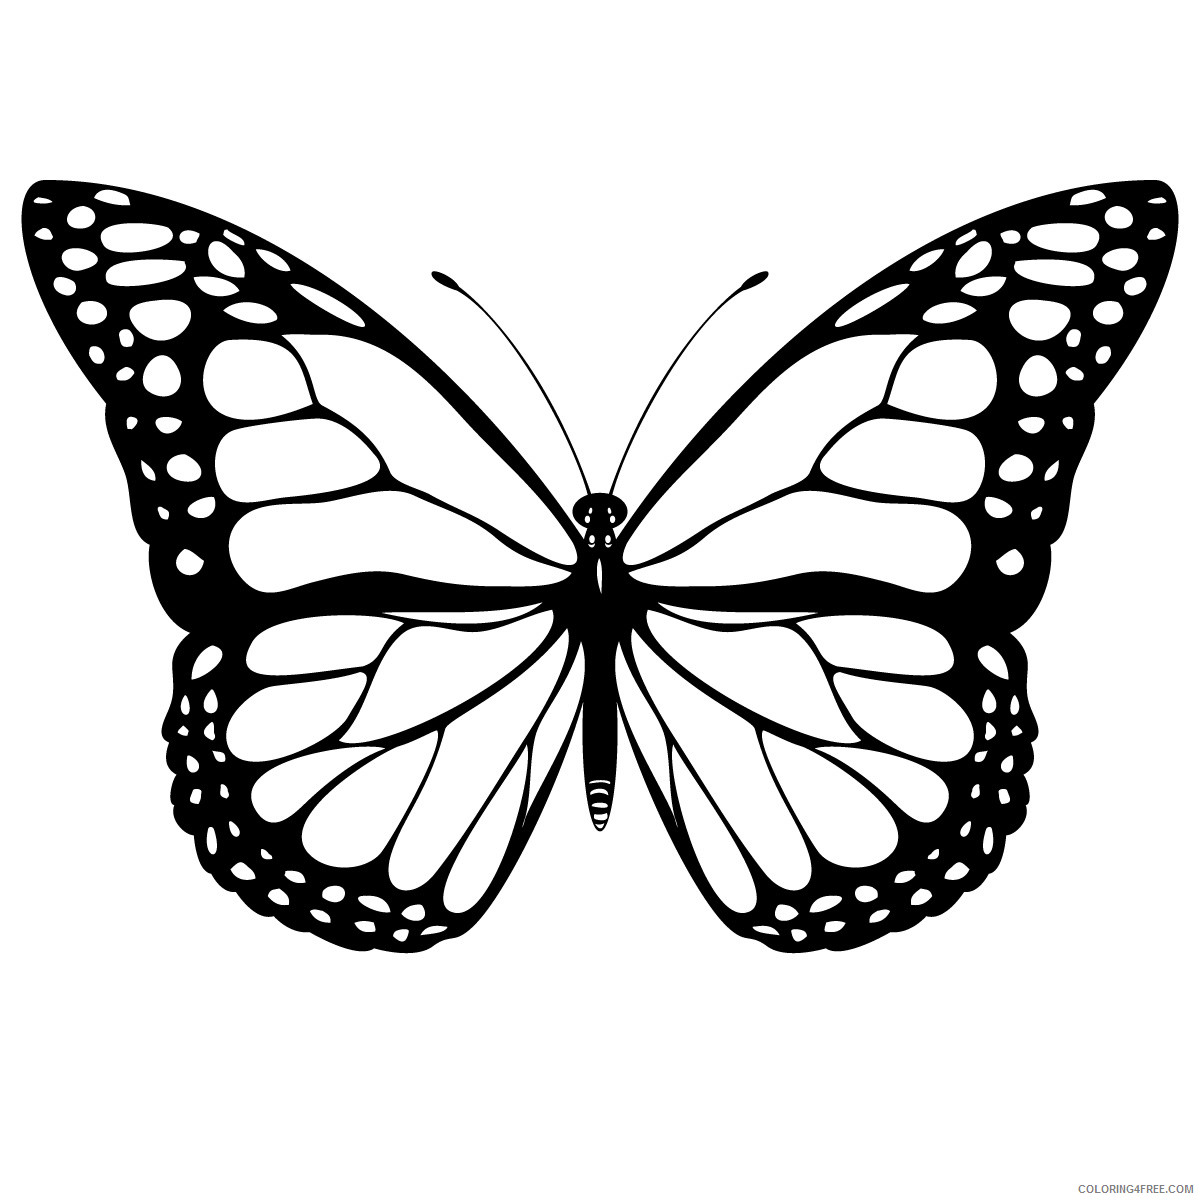 Butterfly Huge Coloring Pages this drawing of a butterfly Printable Coloring4free